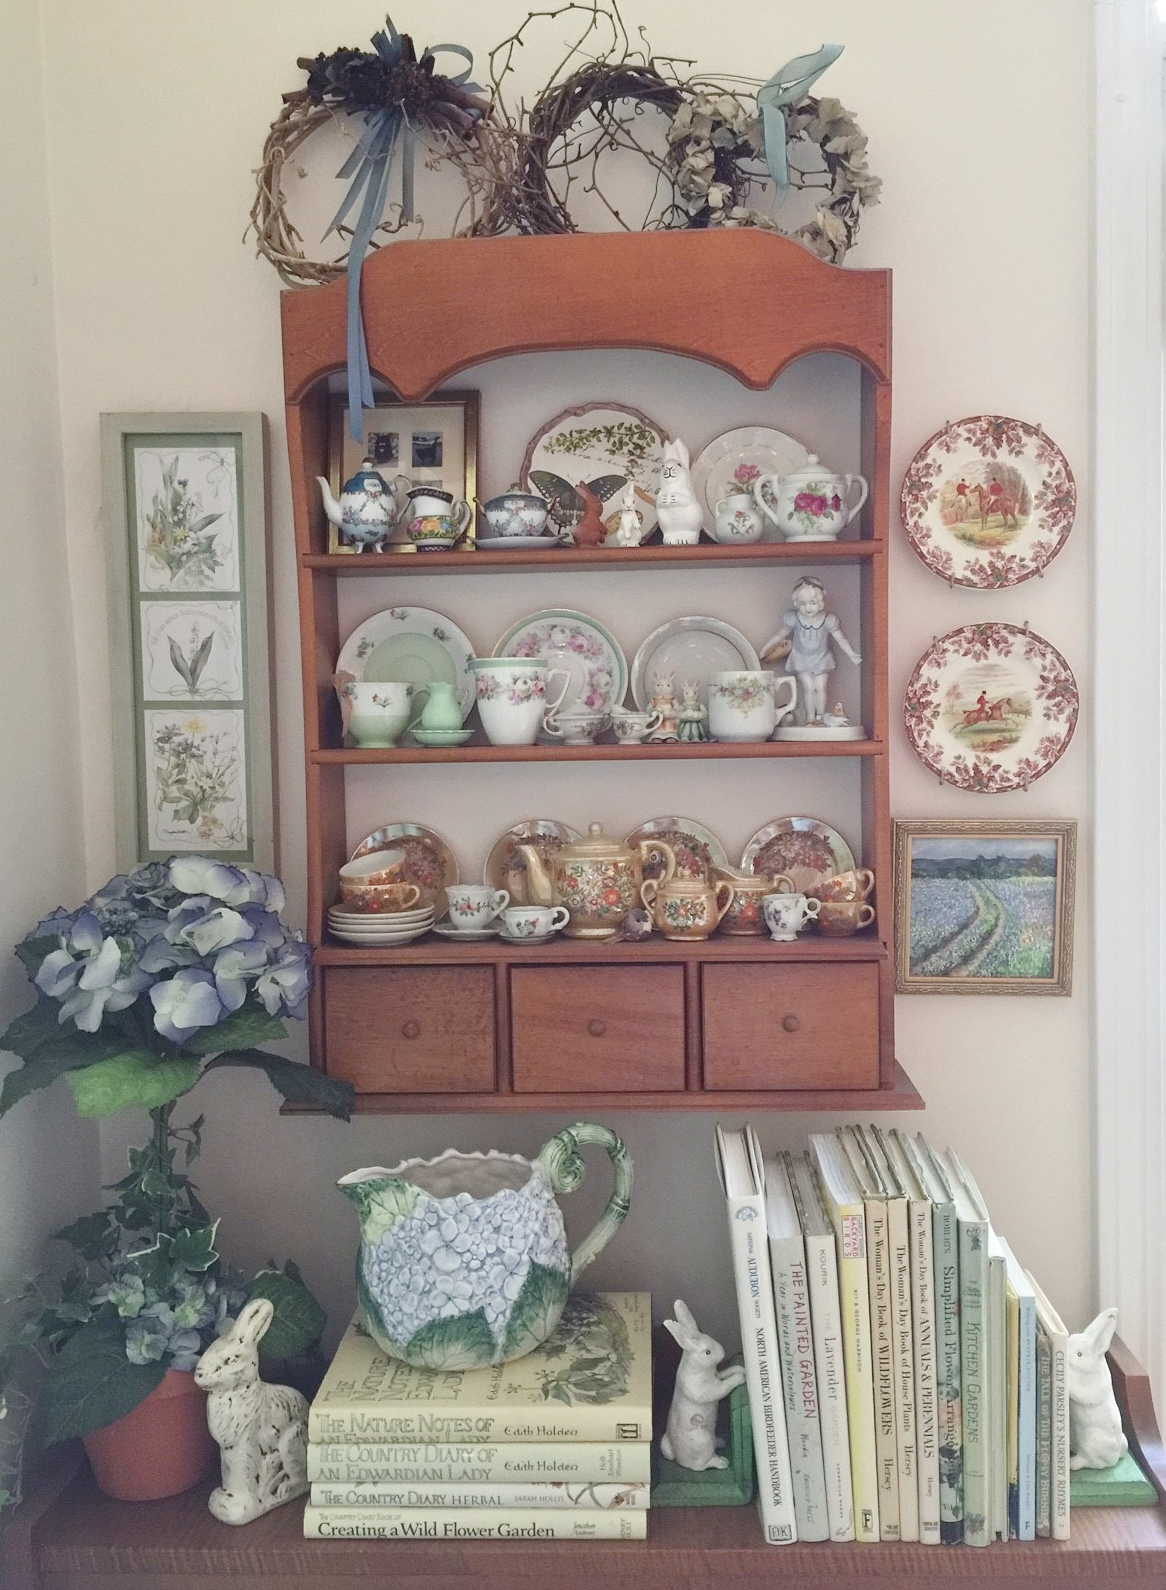 Home to some of my bunnies ... three little bunnies on the top shelf ... china bunny couple on the second shelf ... bunny figurine on top of the bookshelf ... and such a cute pair of bunny bookends holding up gardening and Beatrix Potter books